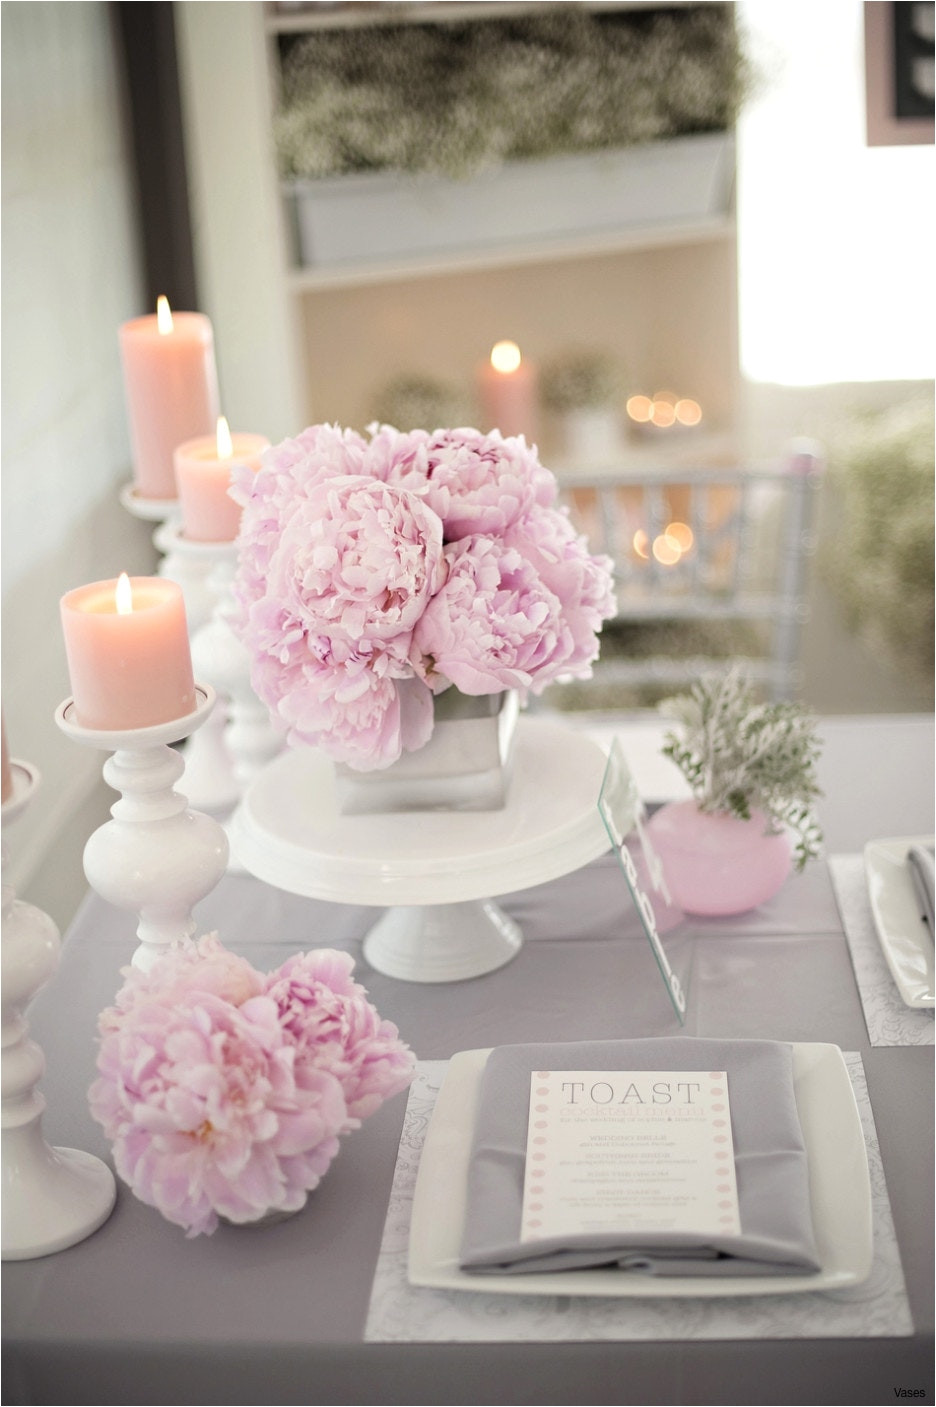 inexpensive clear glass vases of baby shower decorations pictures dsc h vases square centerpiece dsc with baby shower decorations pictures dsc h vases square centerpiece dsc i 0d cheap tall design ideas